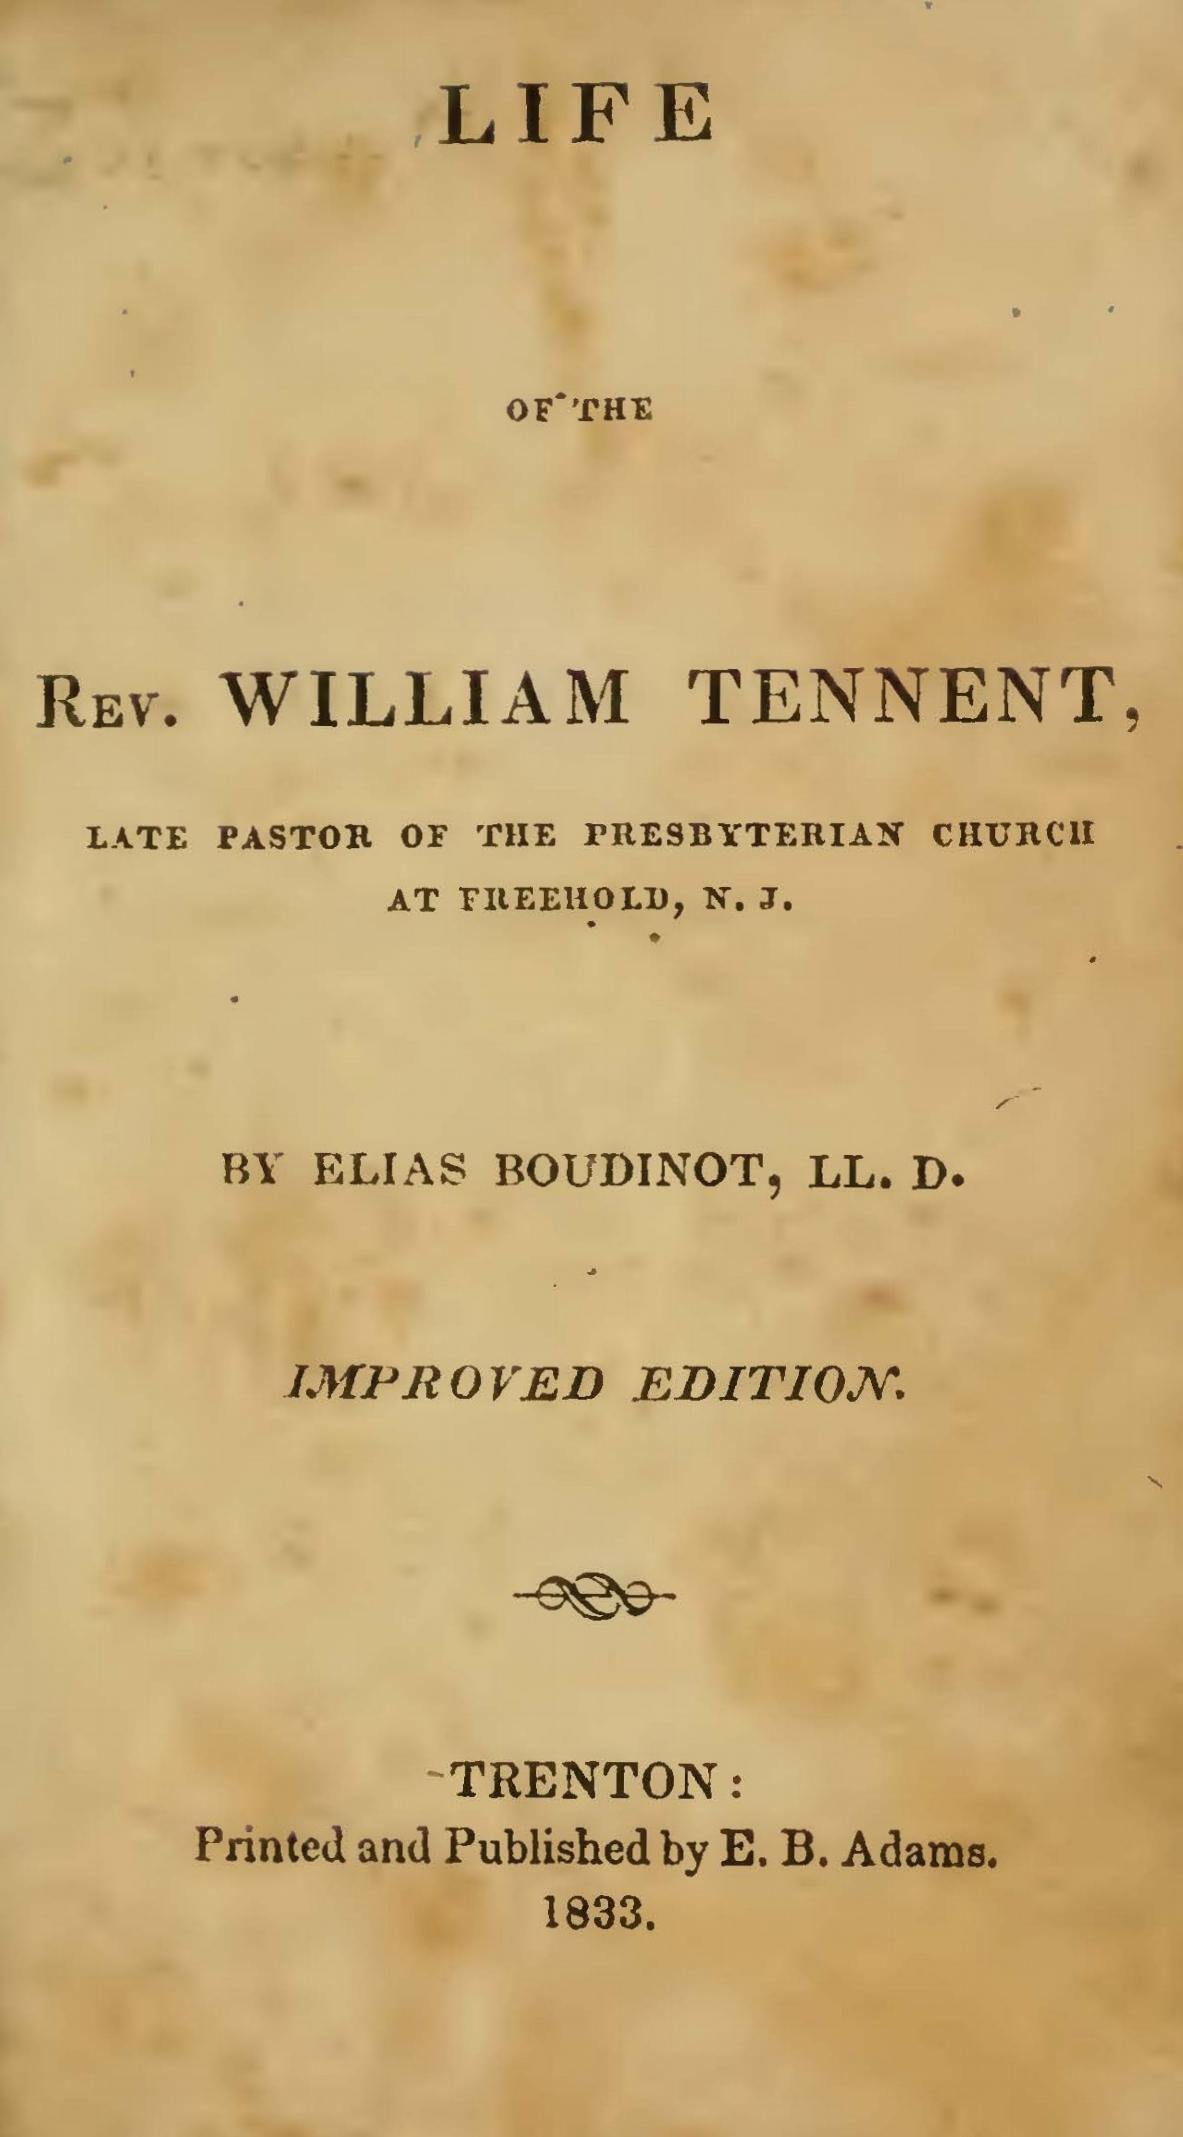 Boudinot, Elias IV, Life of the Rev. William Tennent Title Page.jpg